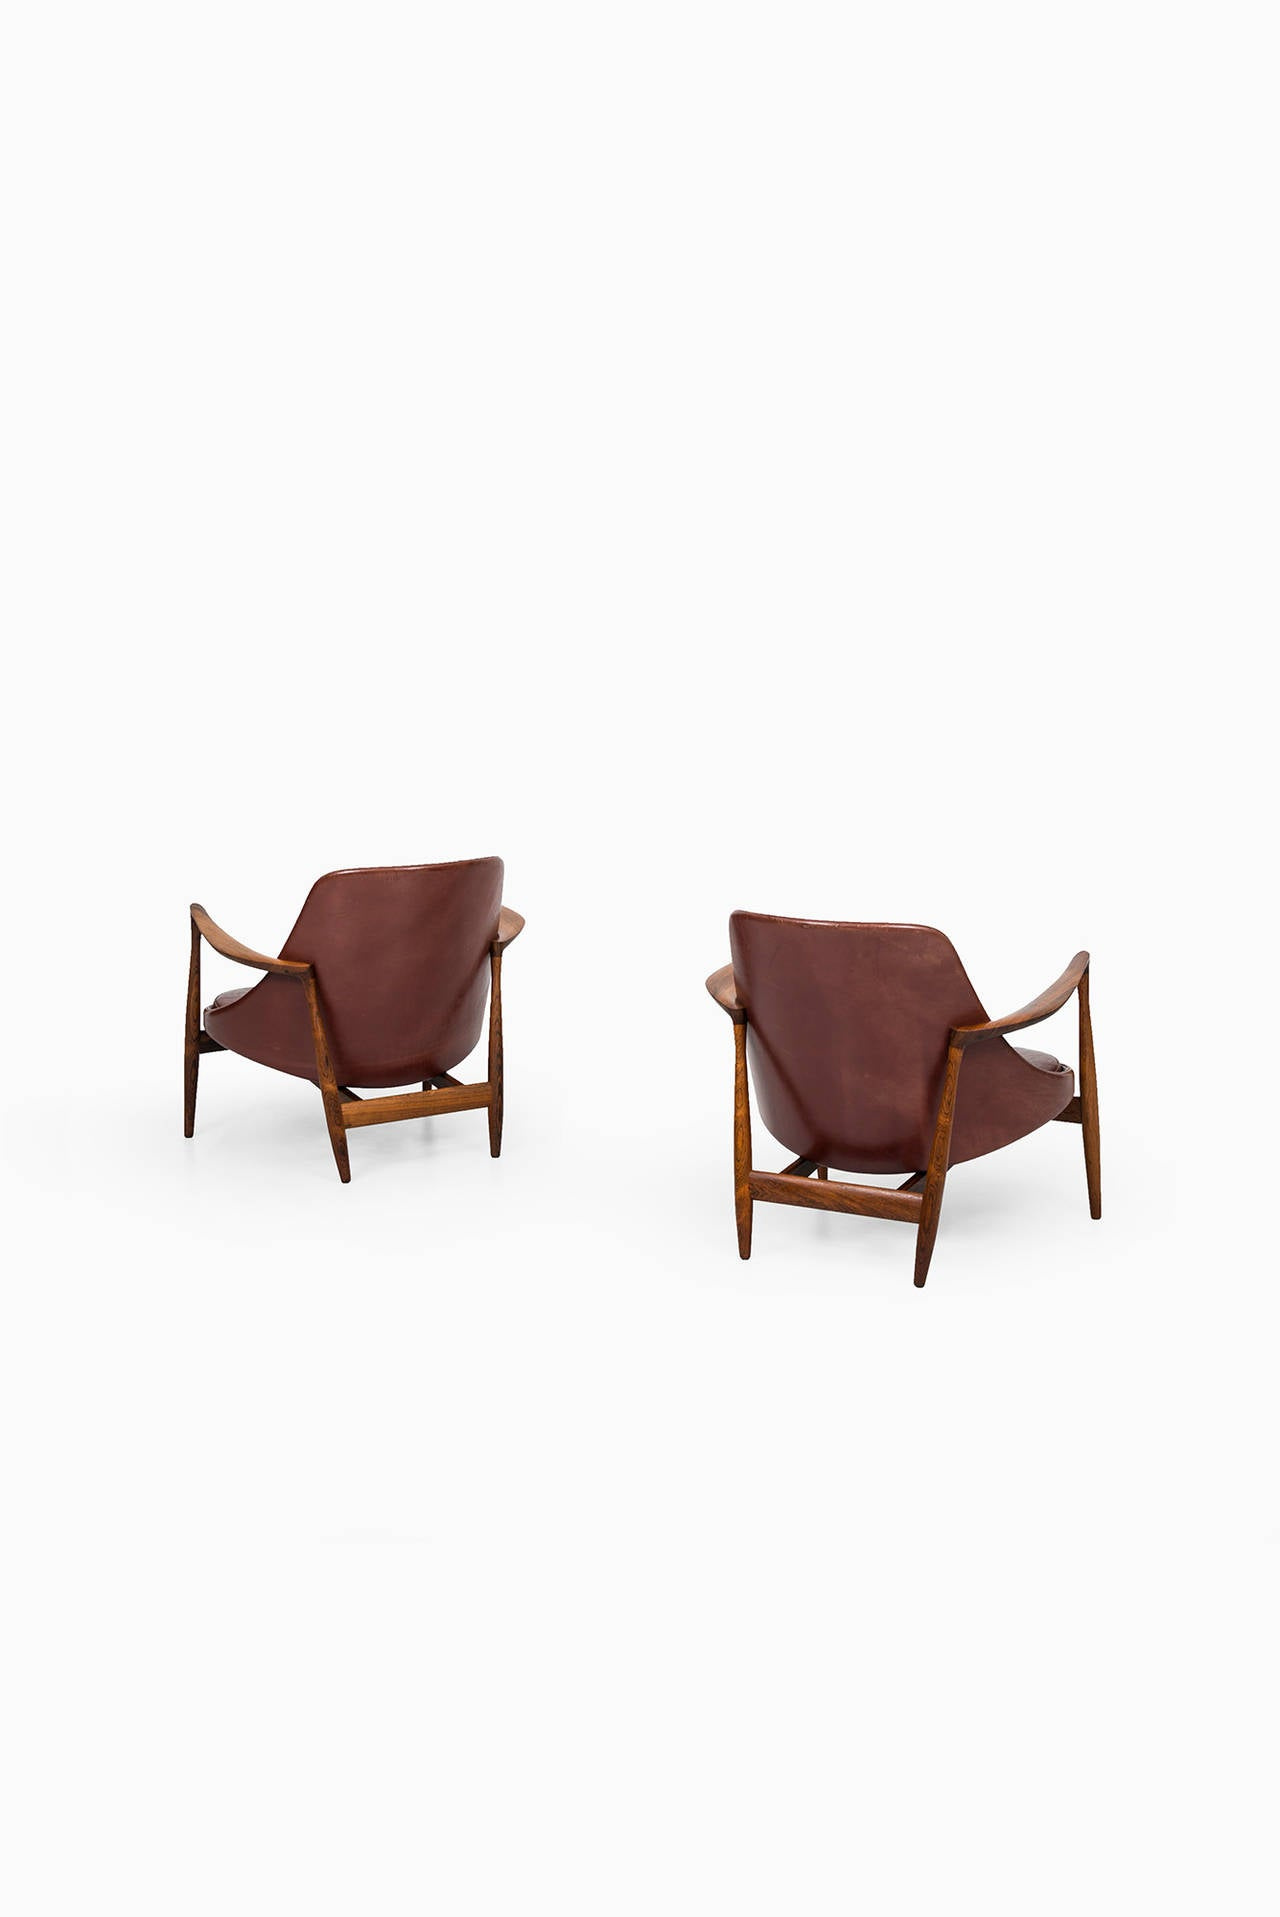 Ib Kofod-Larsen Elizabeth Easy Chairs by Christensen & Larsen in Denmark 9